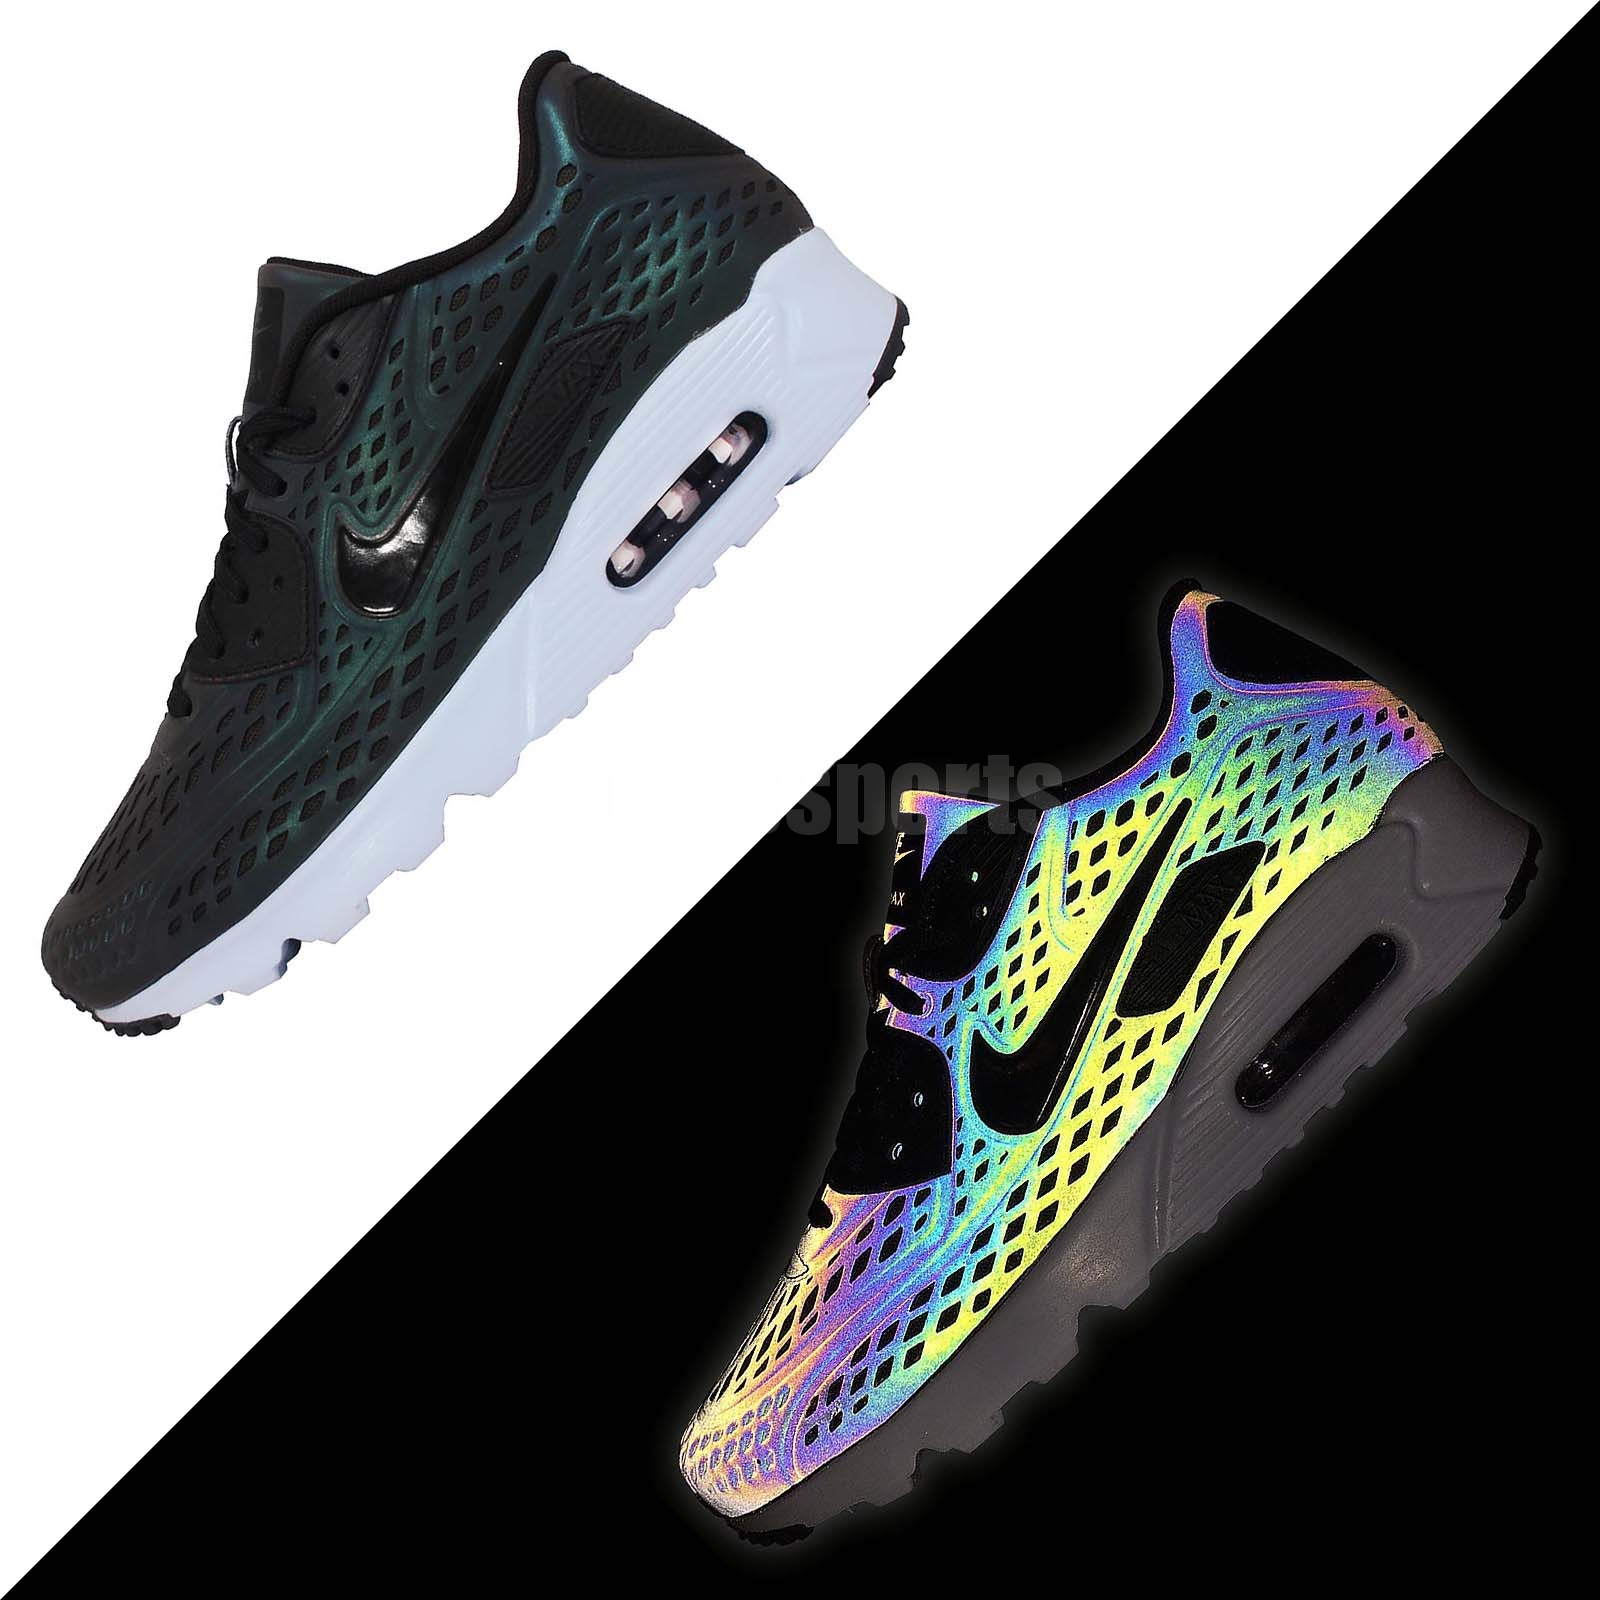 online store c494f 1fb82 NIKE AIR MAX 90 ULTRA MOIRE QS IRIDESCENT PACK MENS RUNNING SHOES  777427-200 on The Hunt